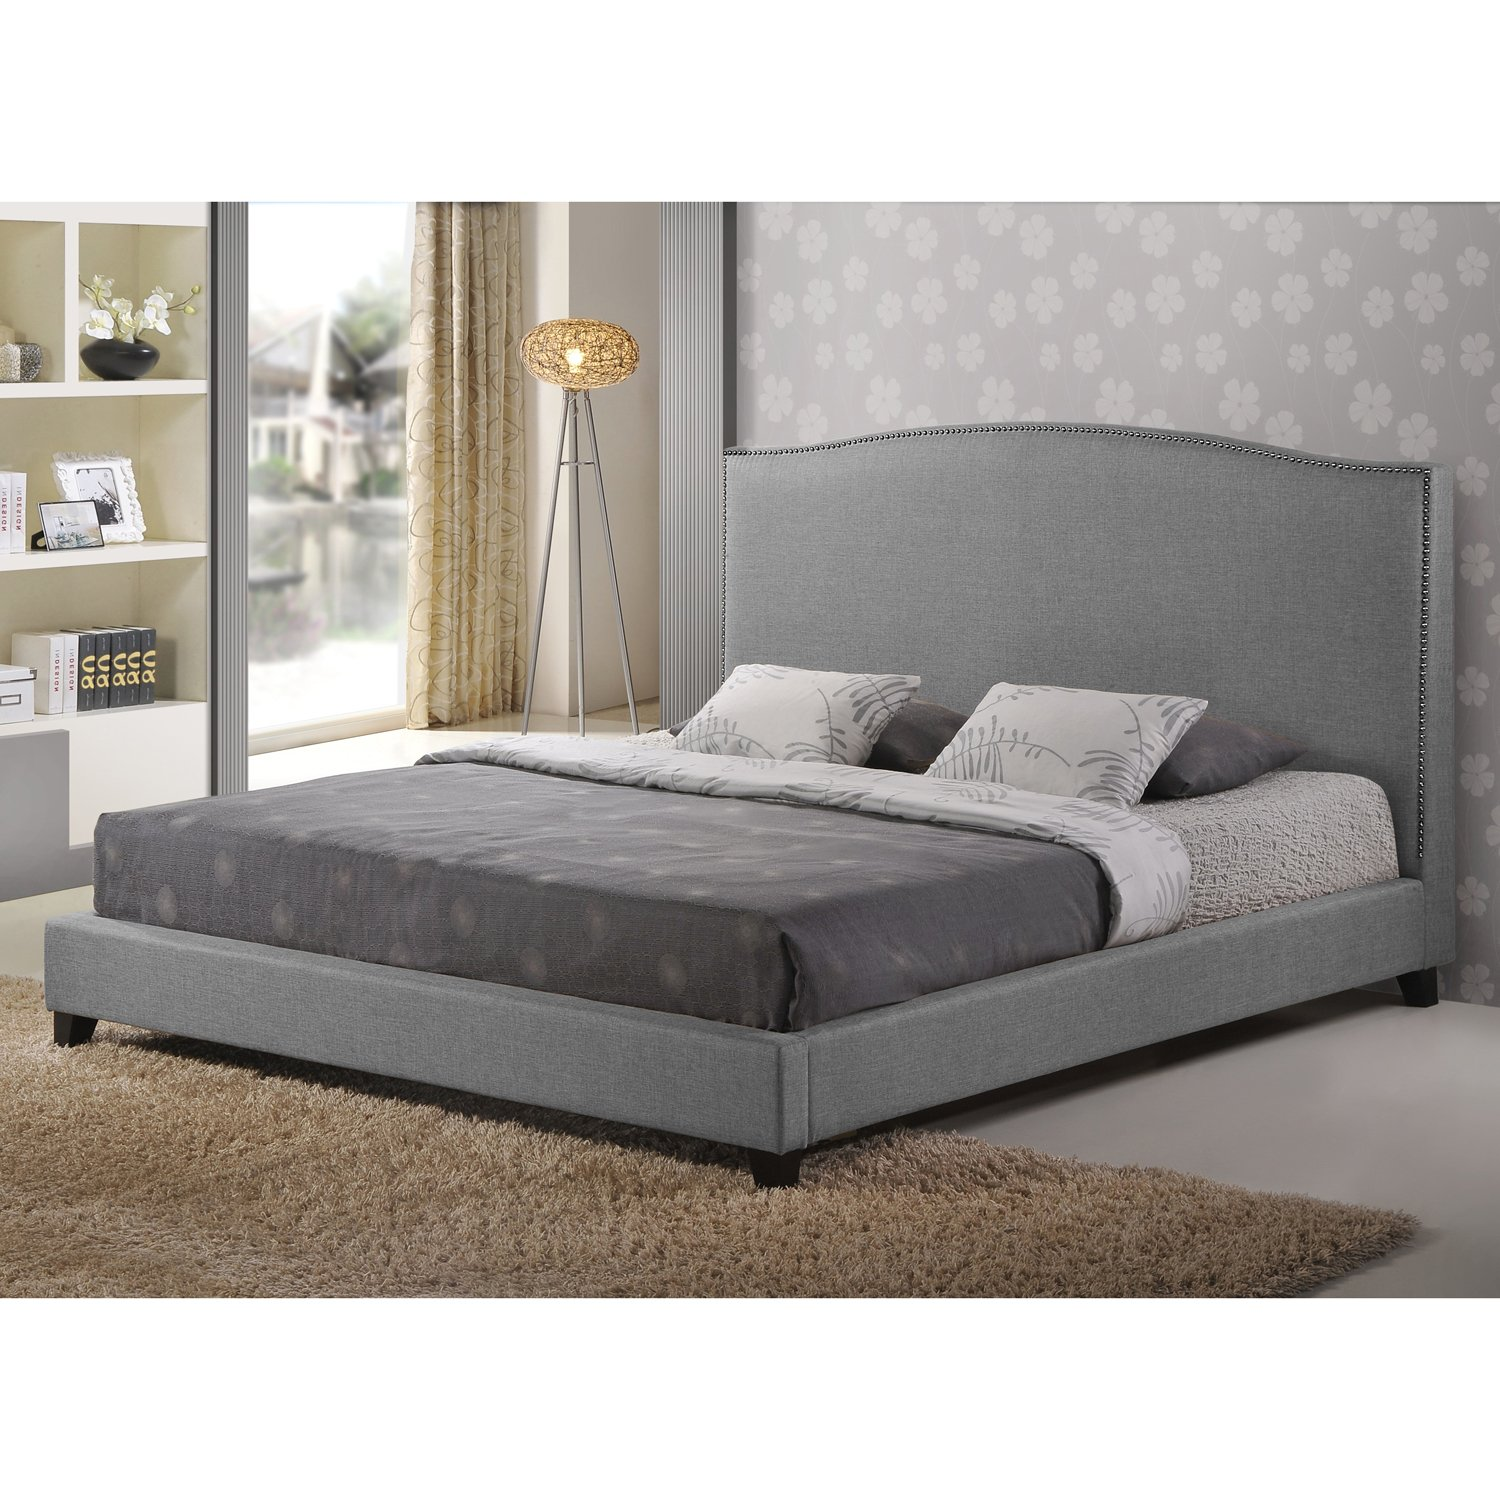 fascinating also platform headboard bed king with images size plans frames